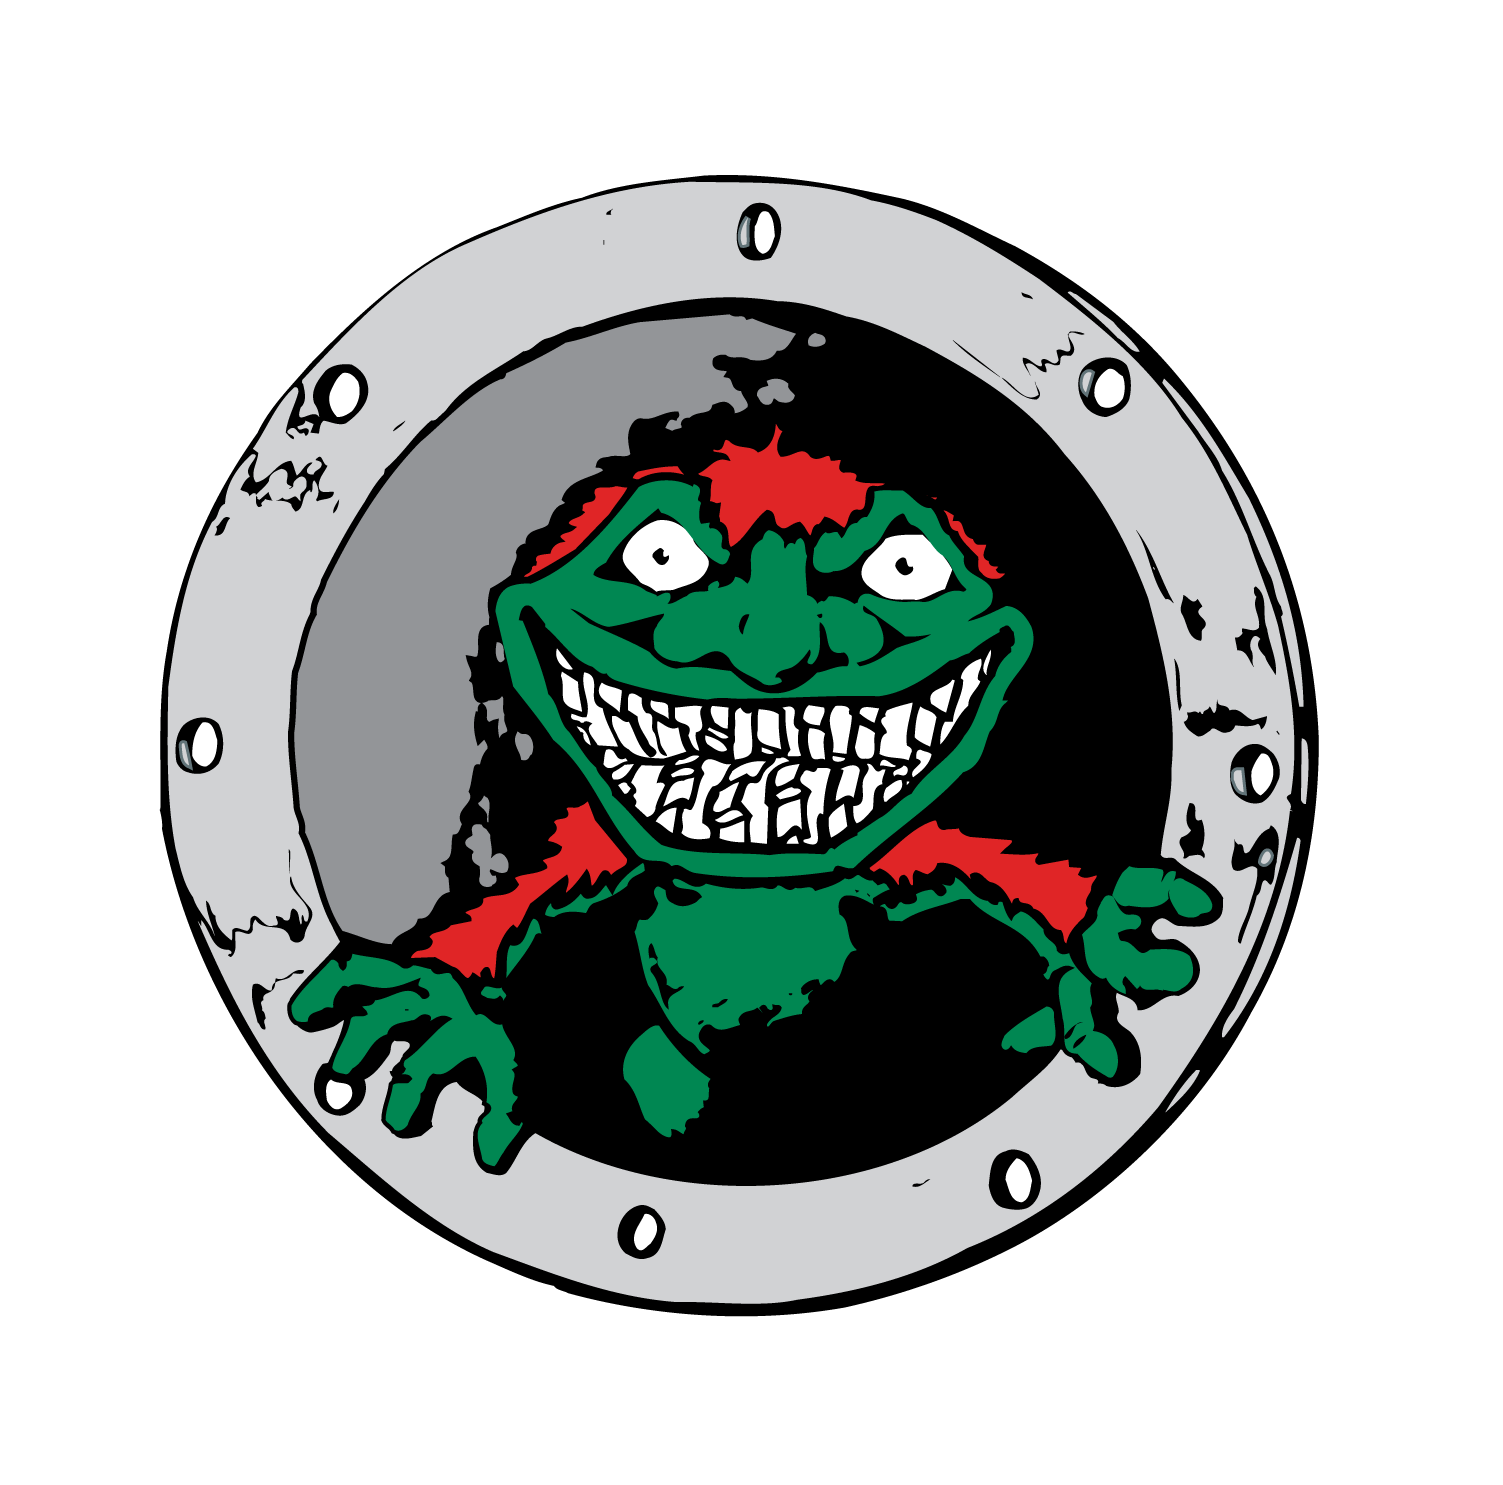 Muffin Monster sewage grinder logo